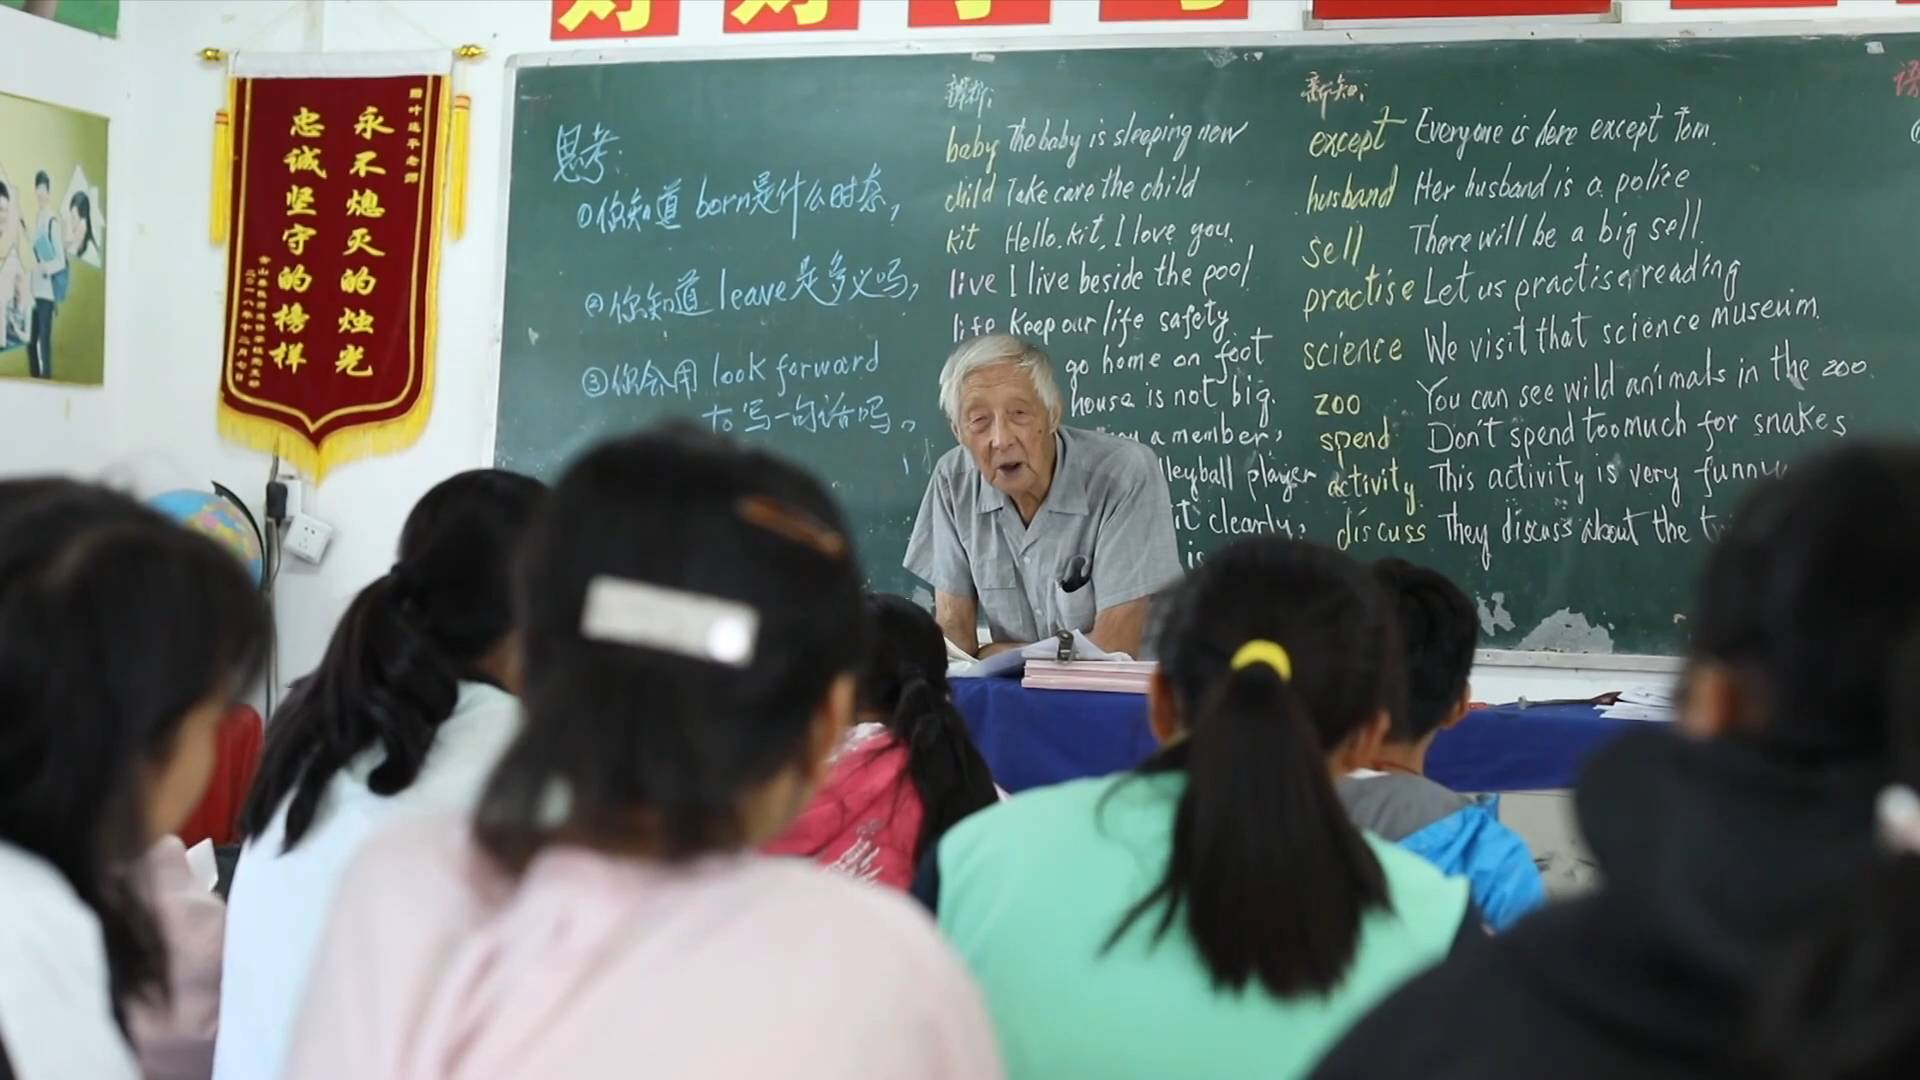 93-year-old Chinese man's free supplementary learning school